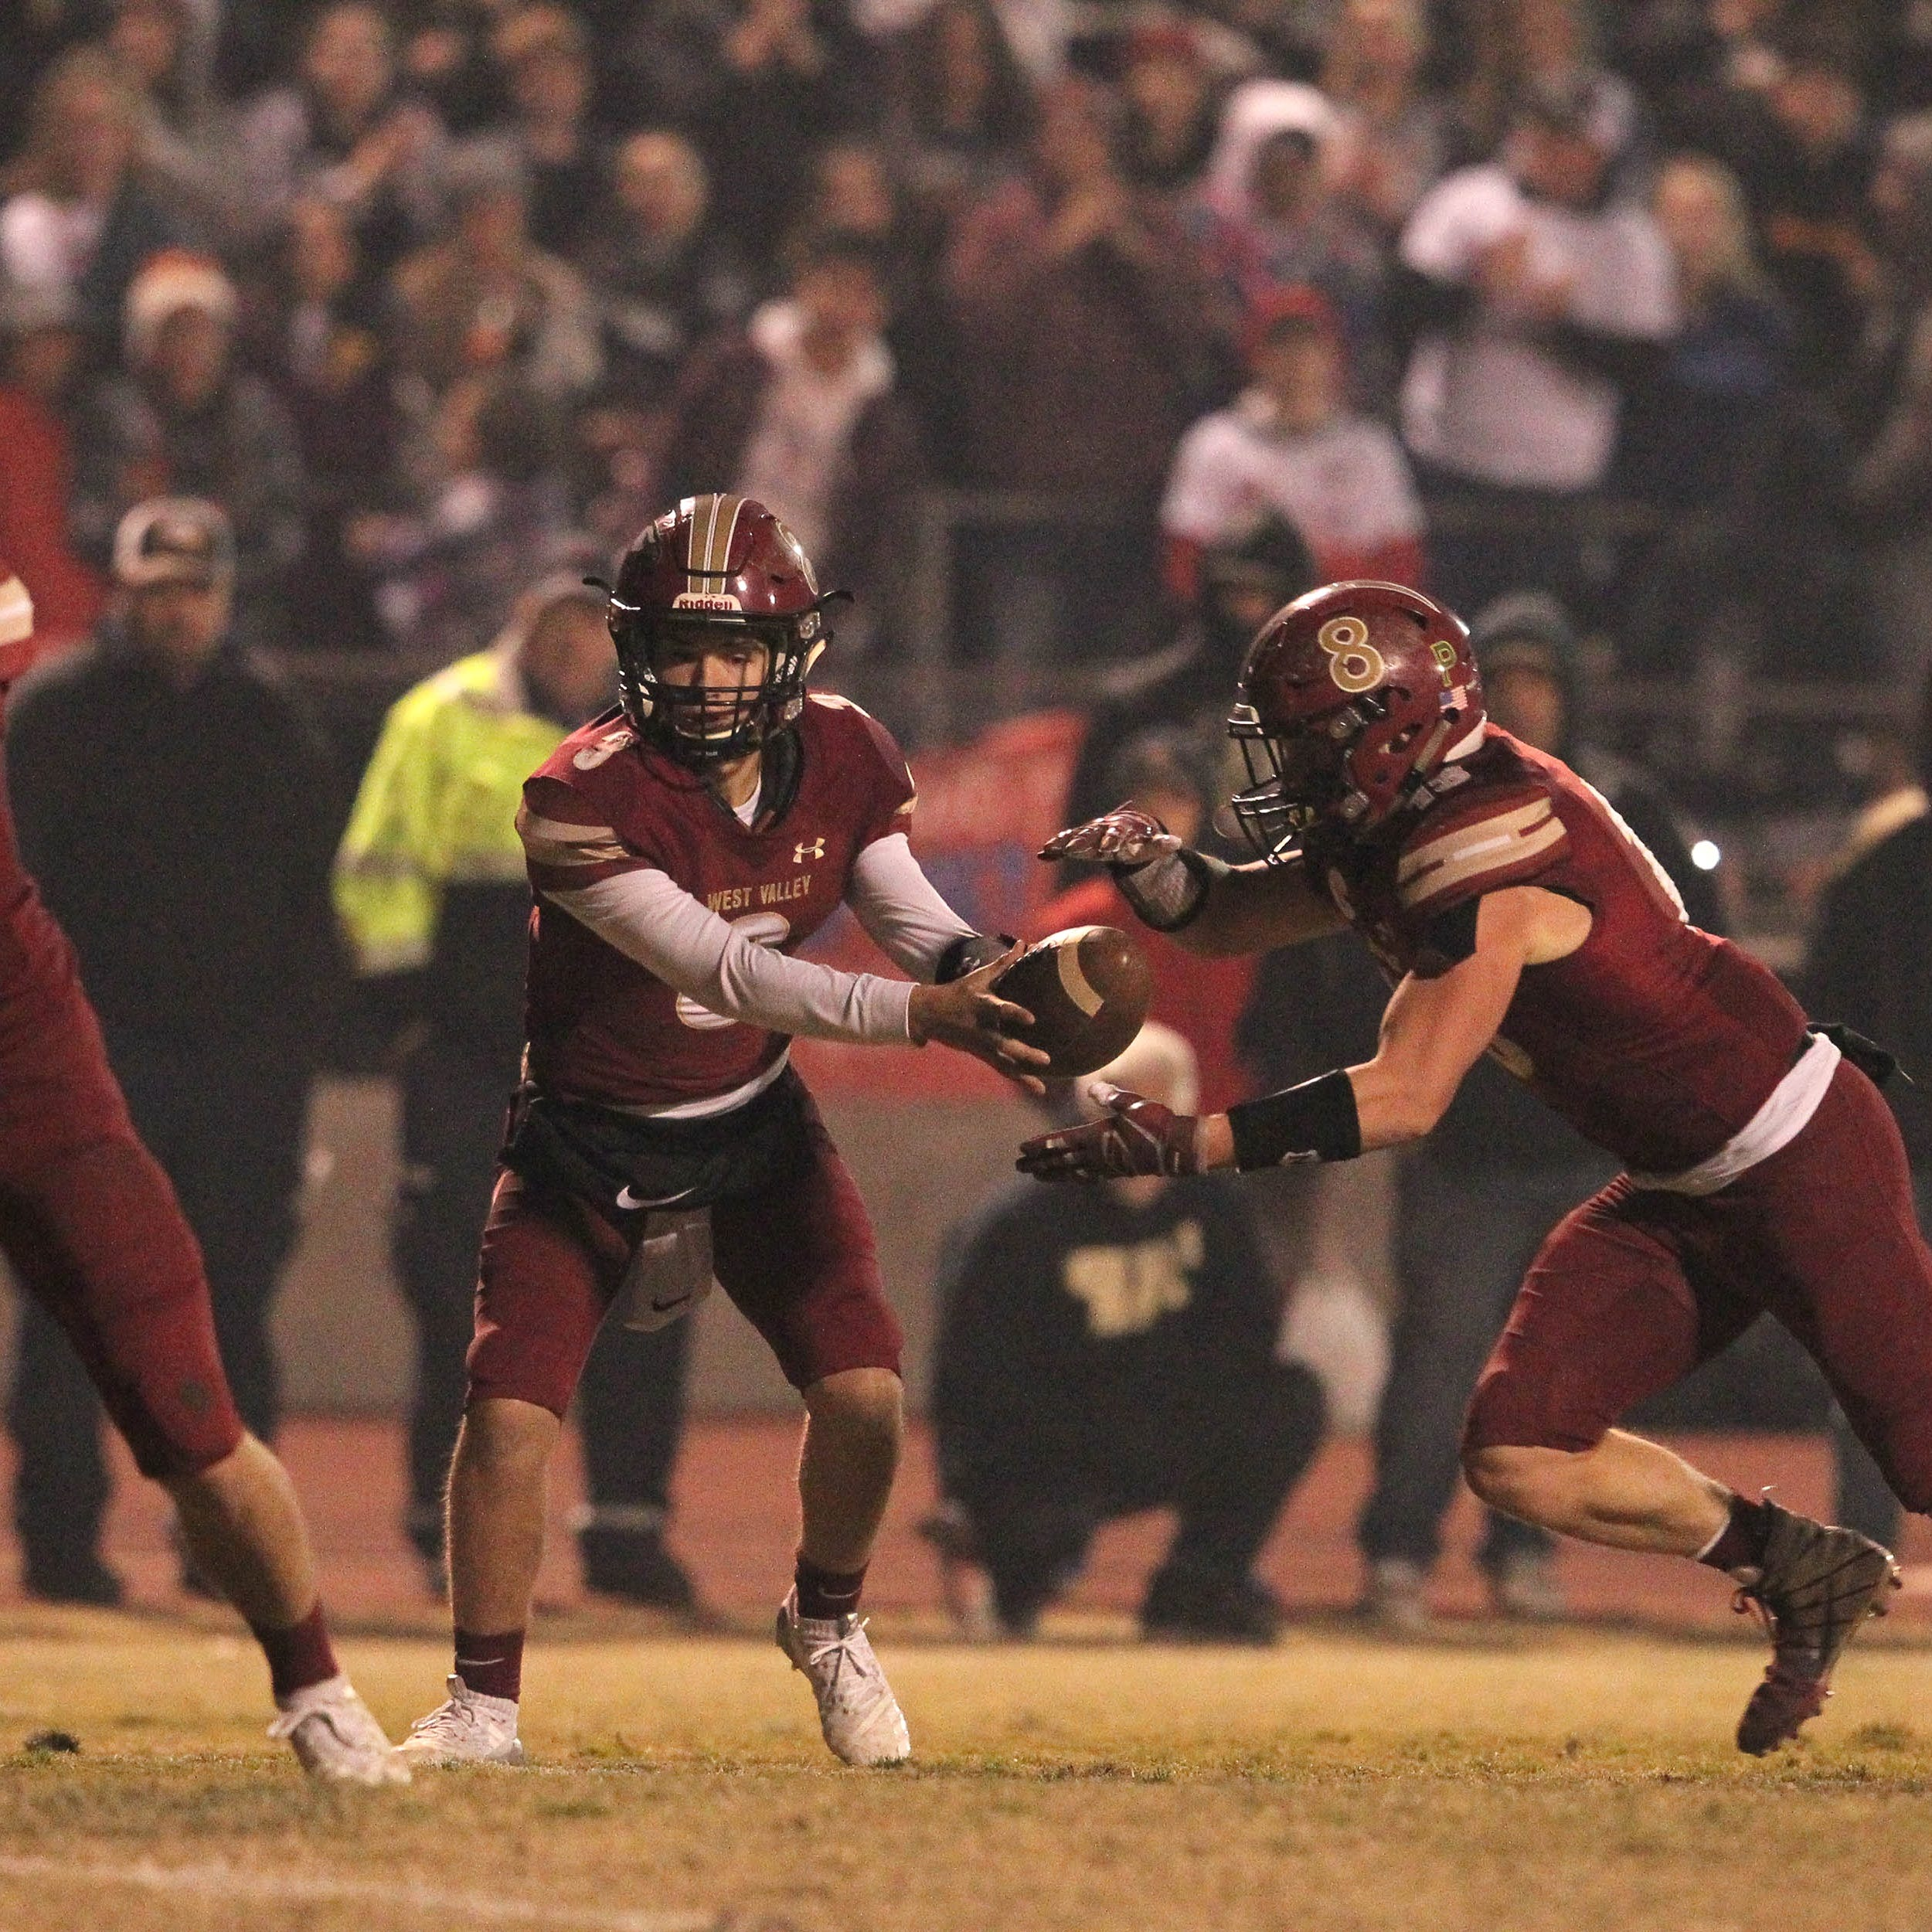 Football roundup: West Valley wins a somber, smoky playoff game over U-Prep